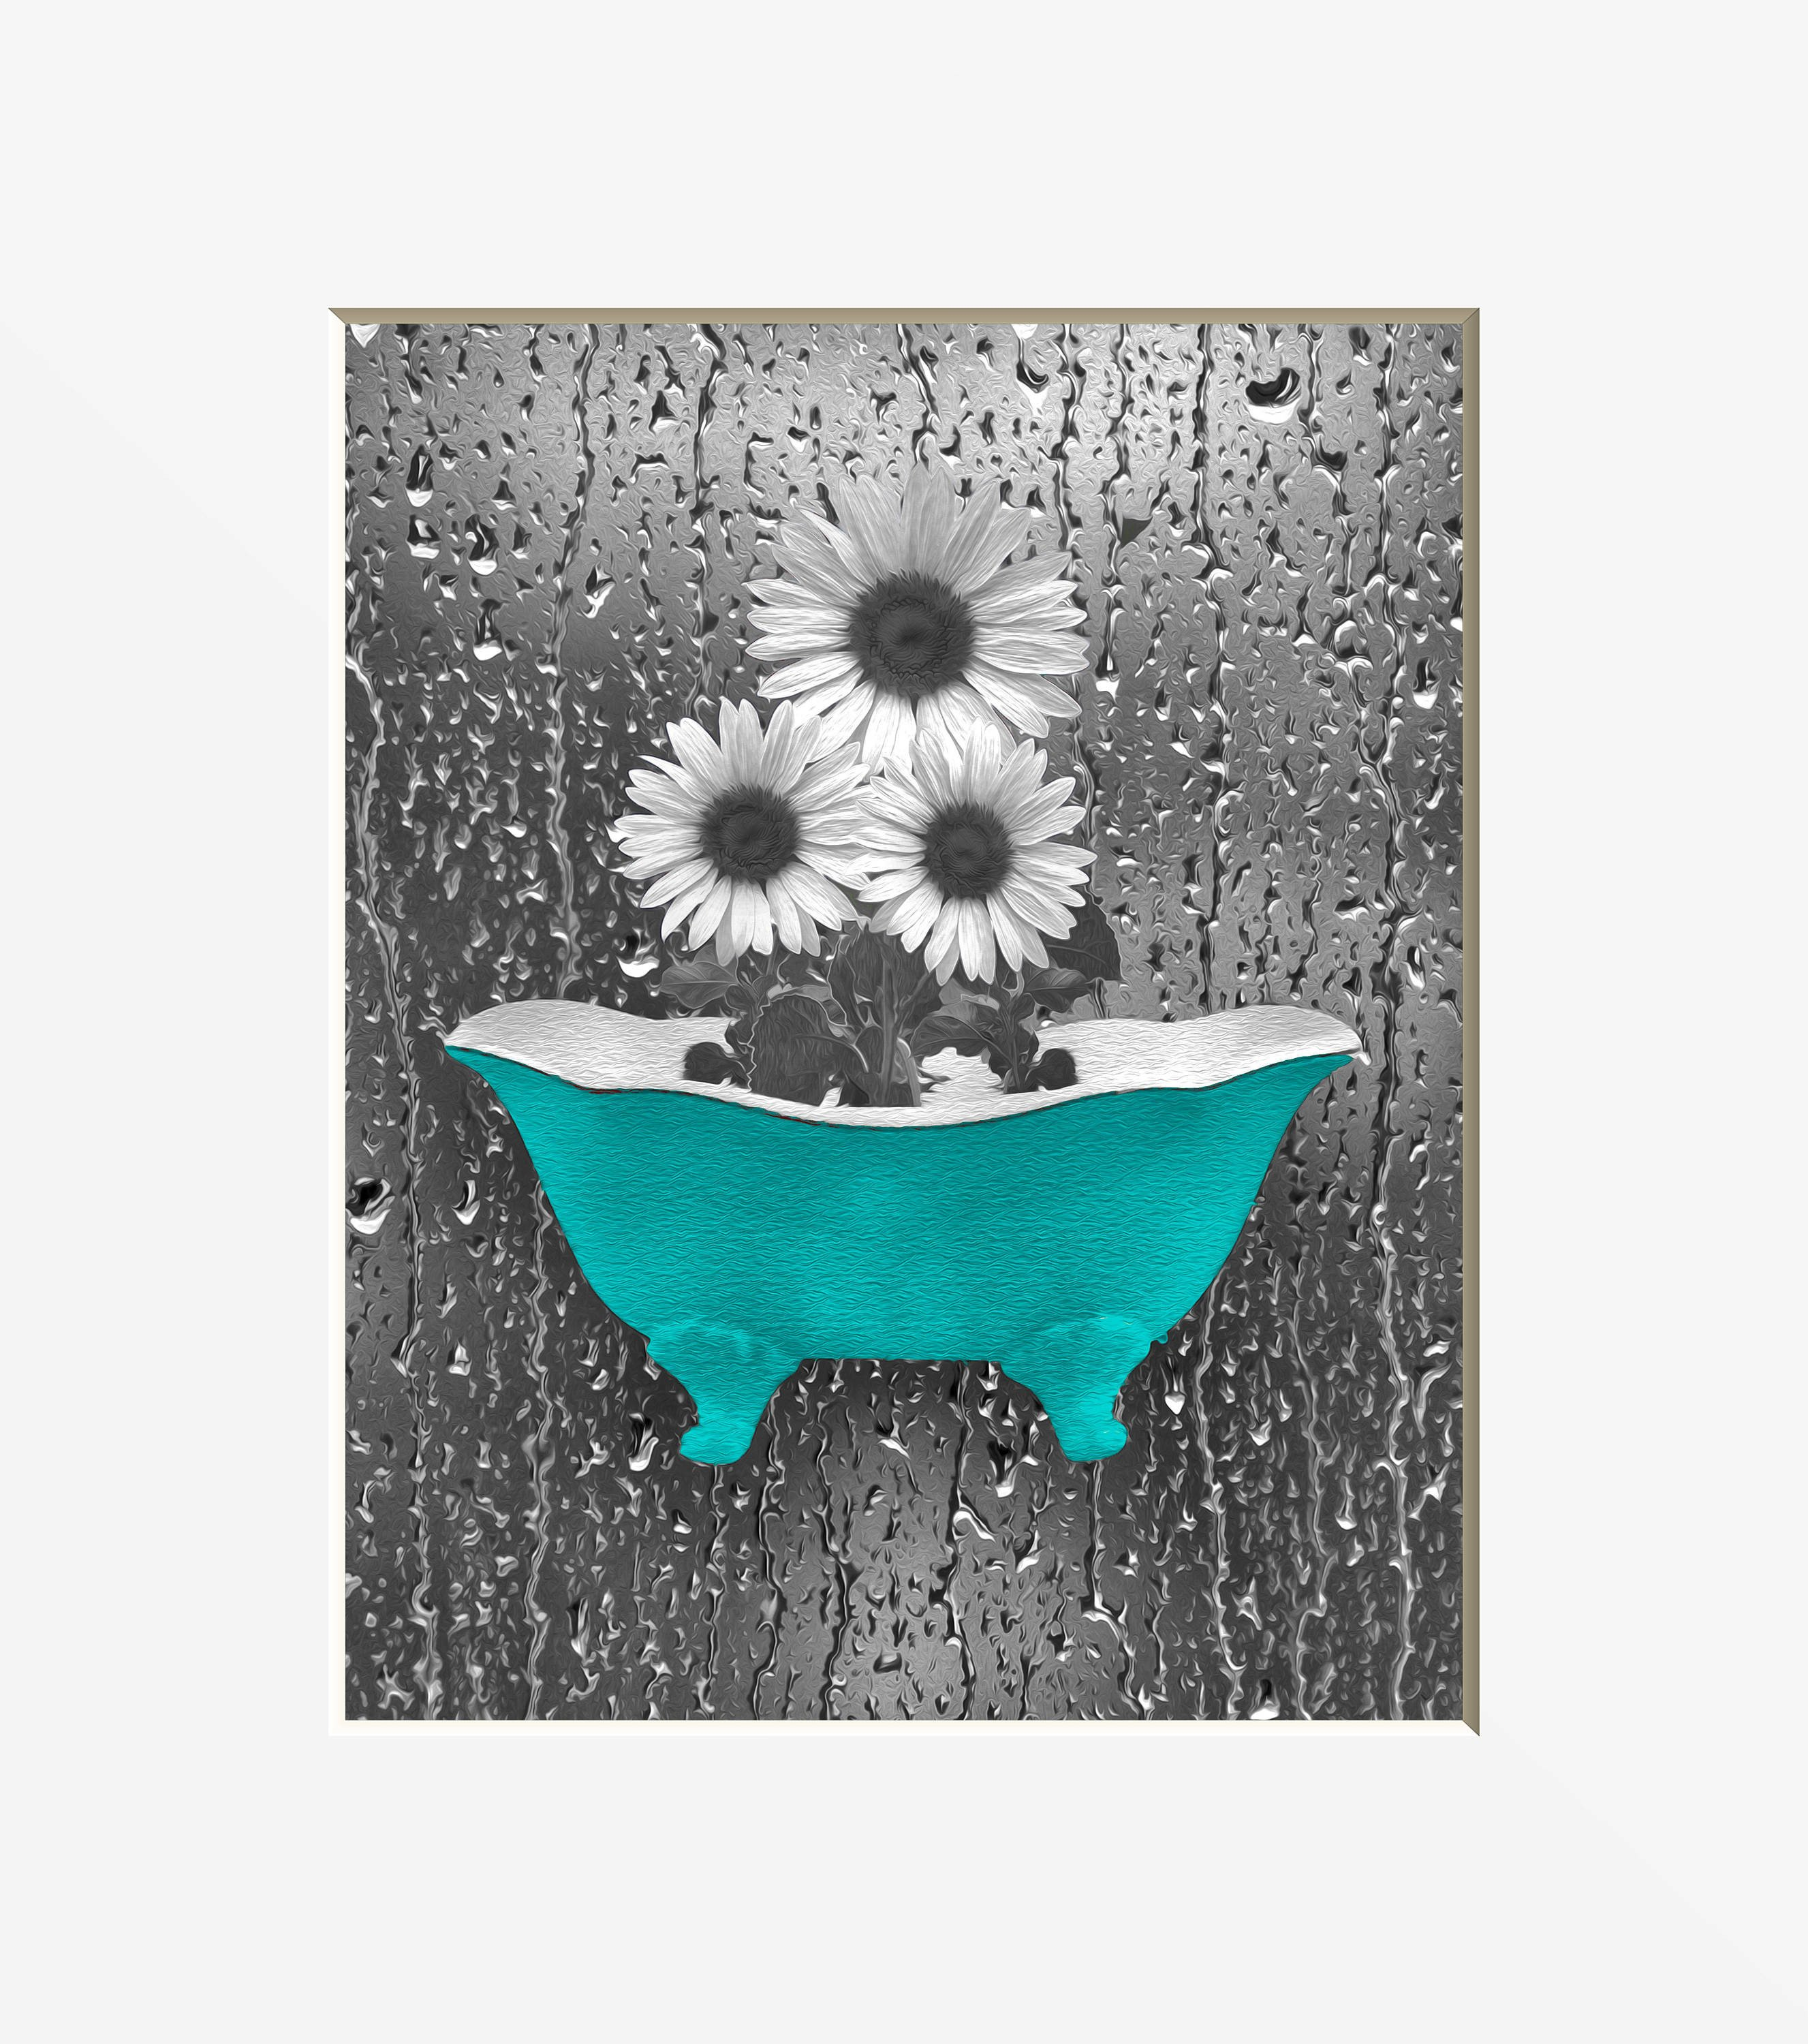 Teal and Gray Bathroom Decor Unique Sunflower Bathroom Decor Teal Gray Wall Art Sunflower